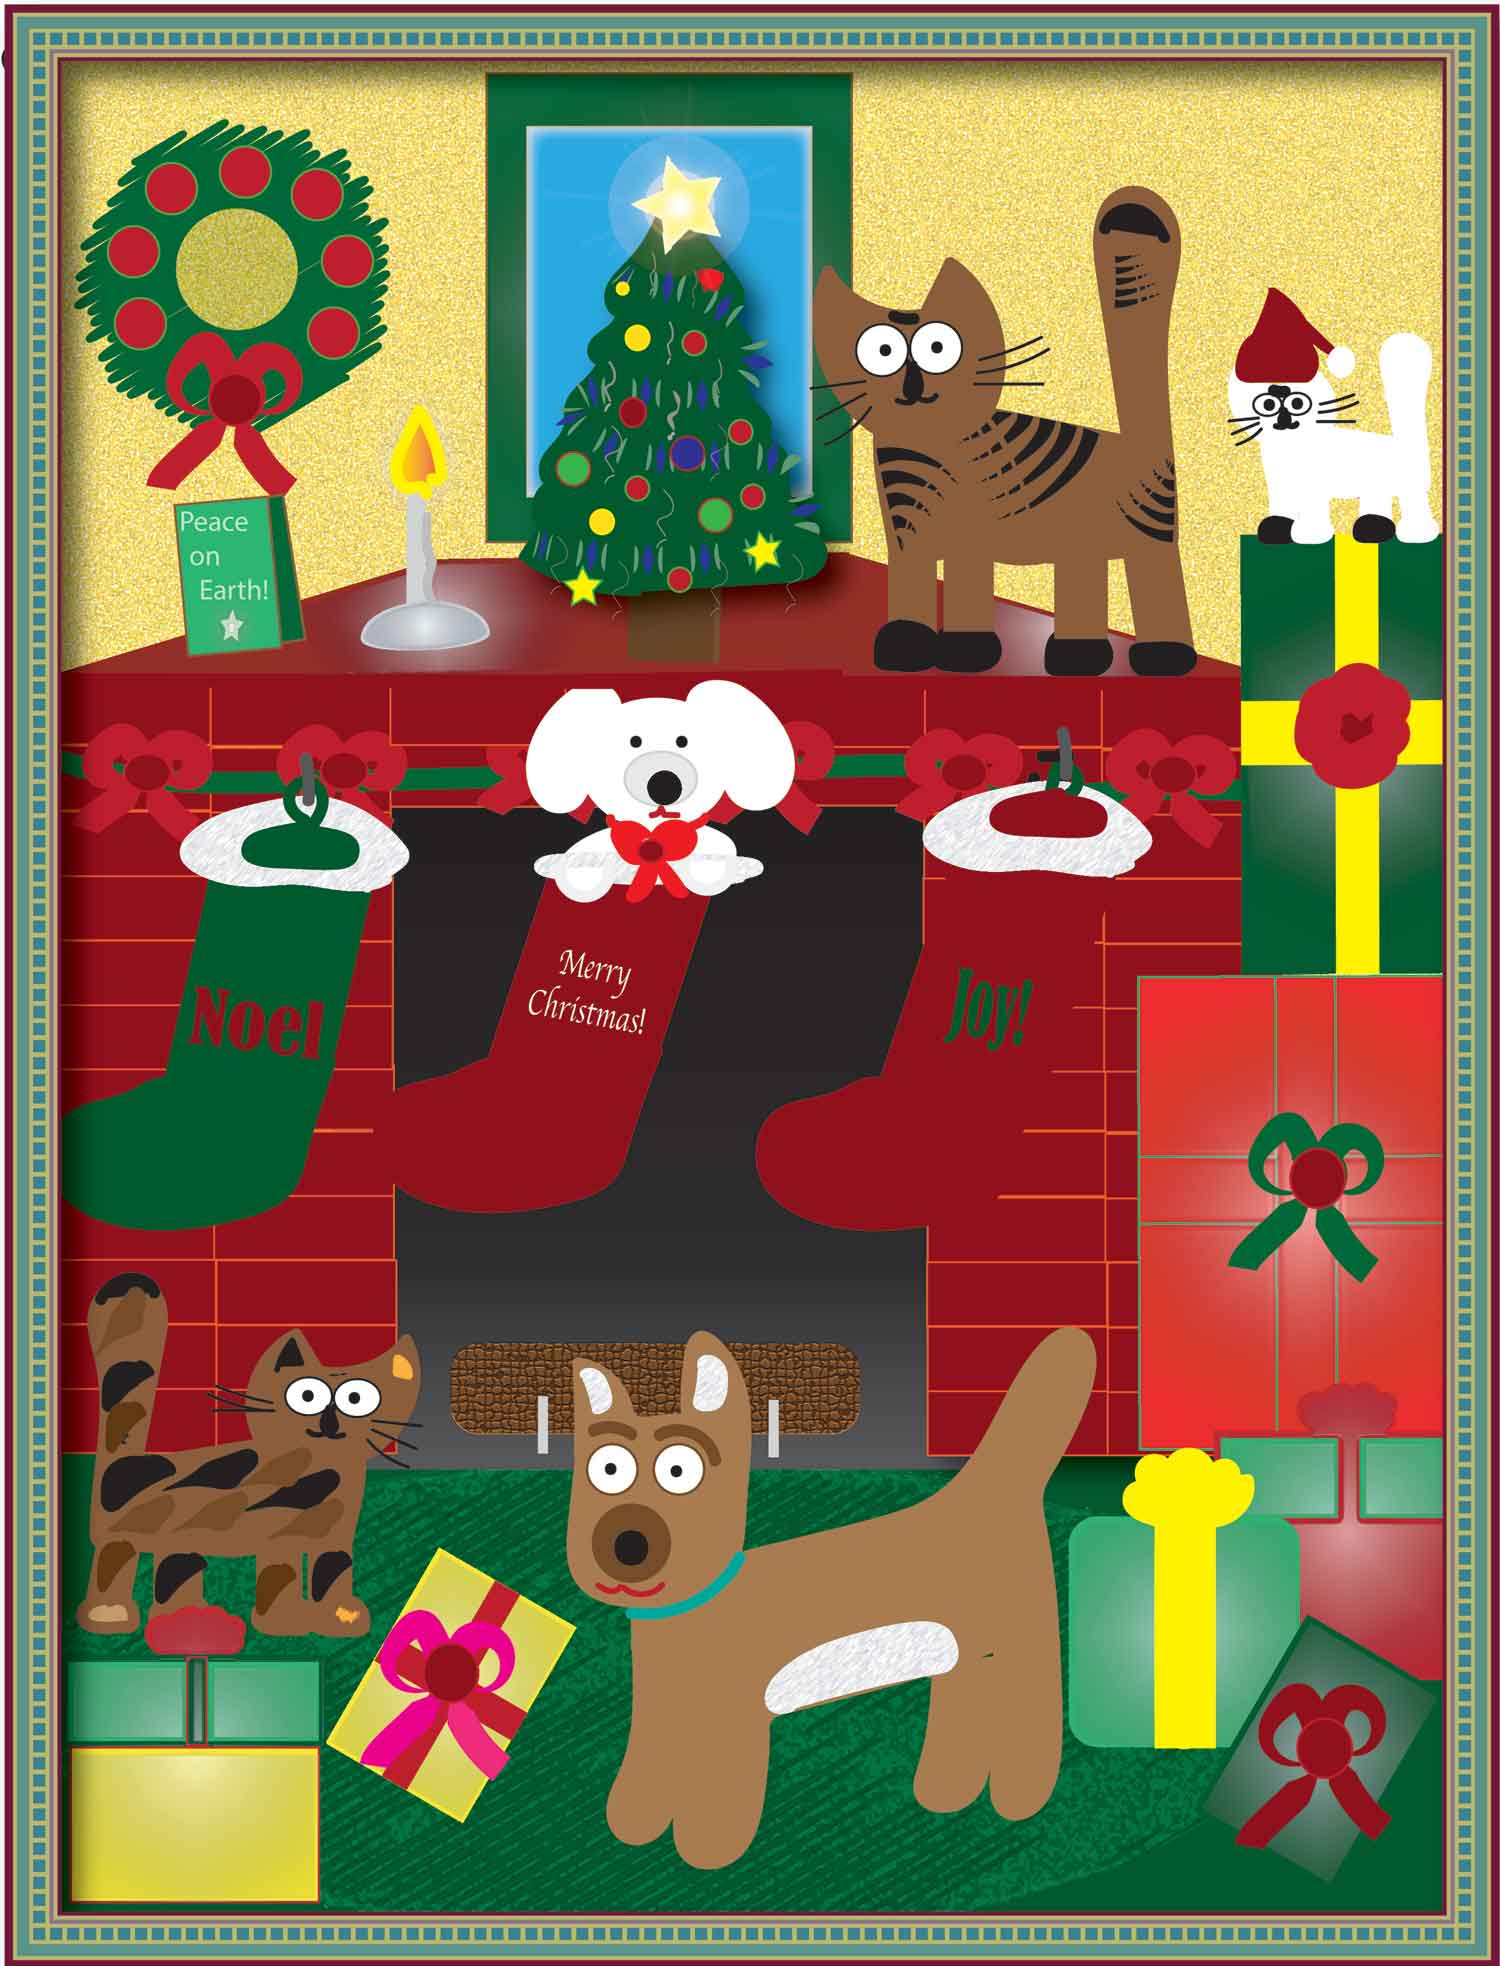 cats and dogs Christmas illustration